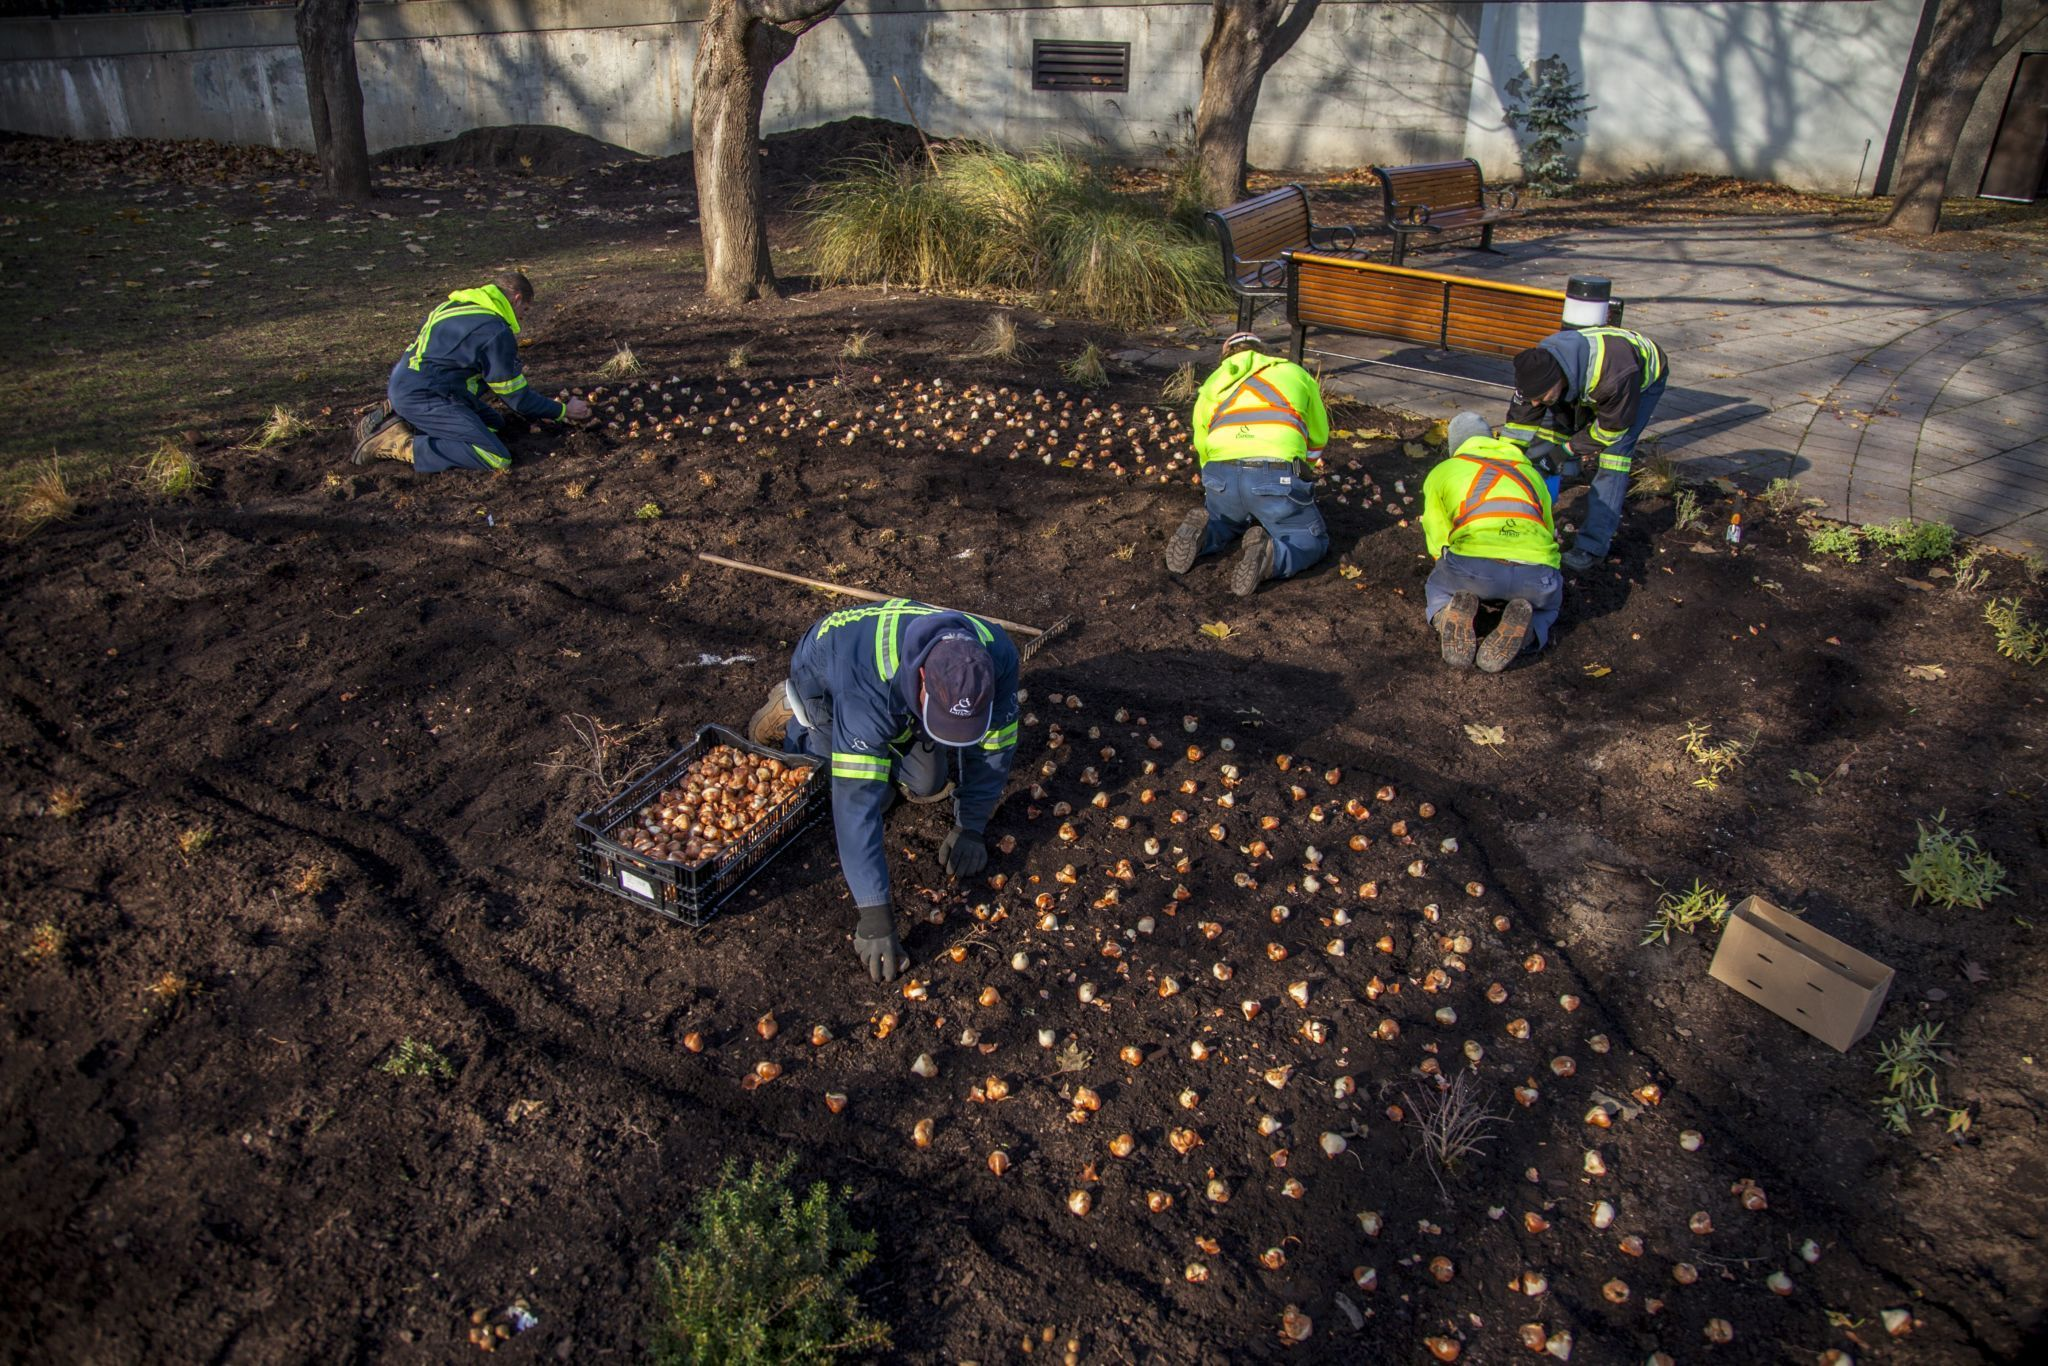 Employees at work, planting tulip bulbs